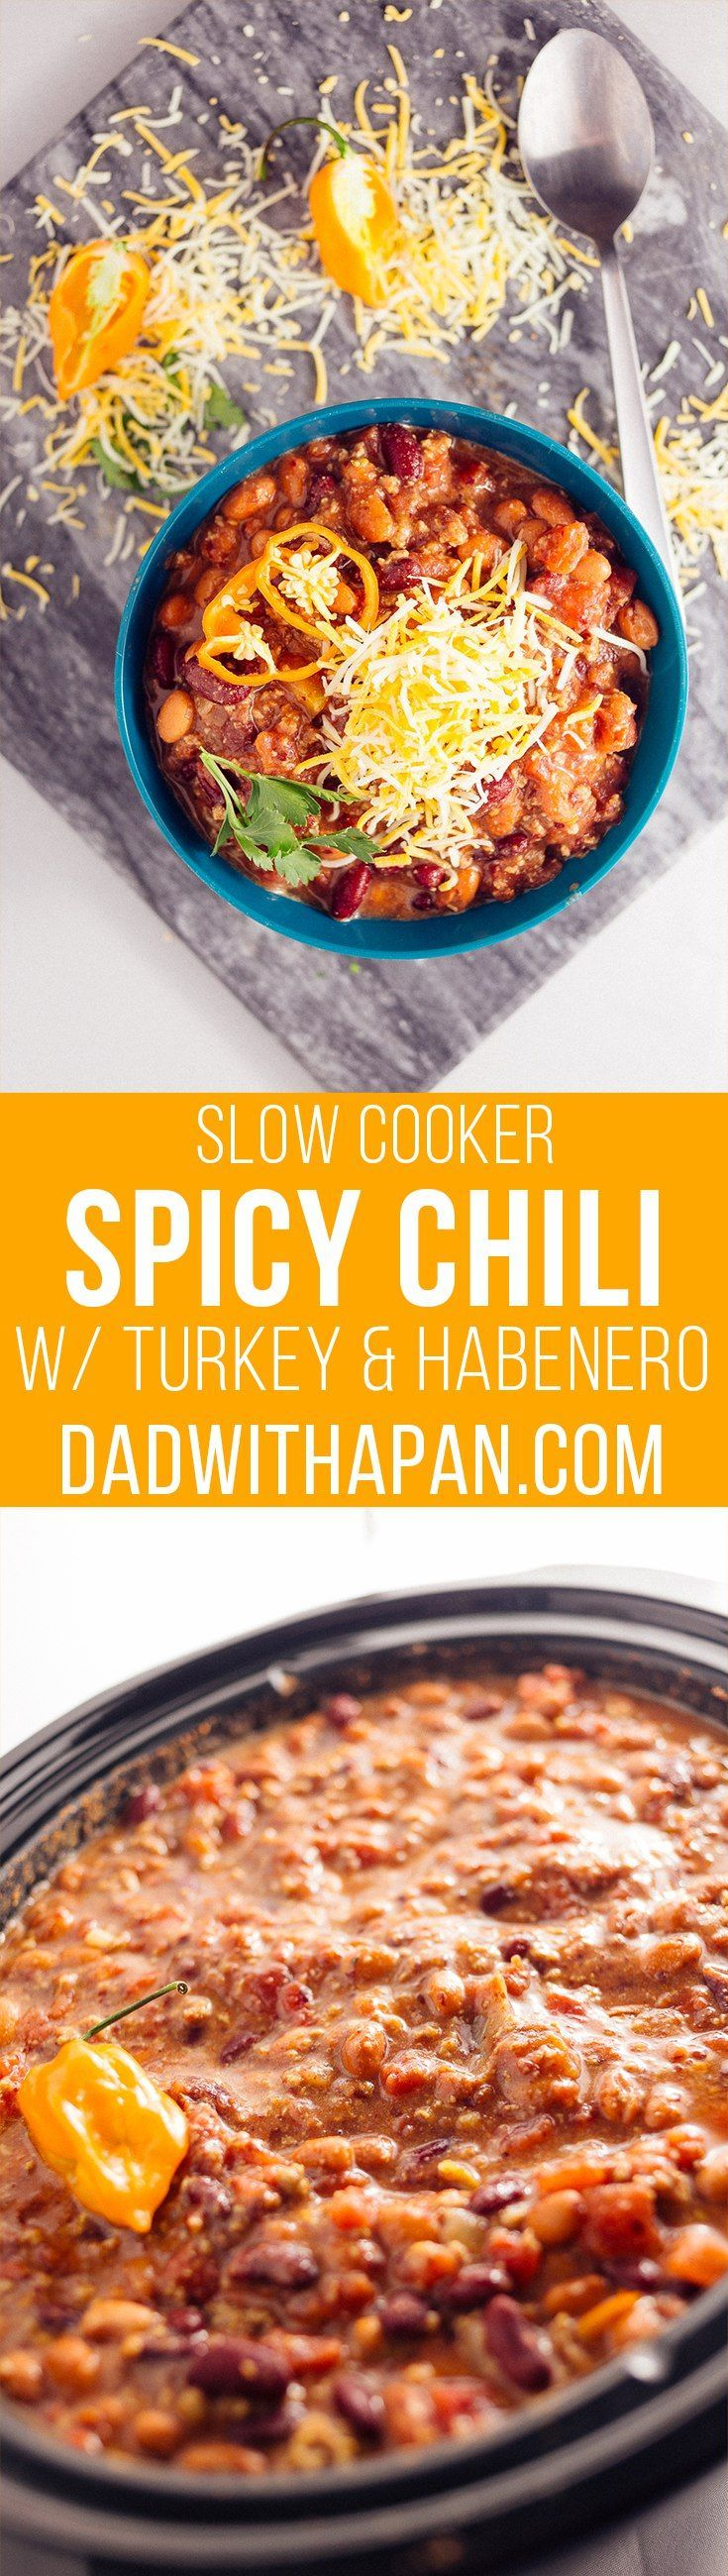 Spicy Turkey Habanero Crock Pot Chili - Dad With A Pan